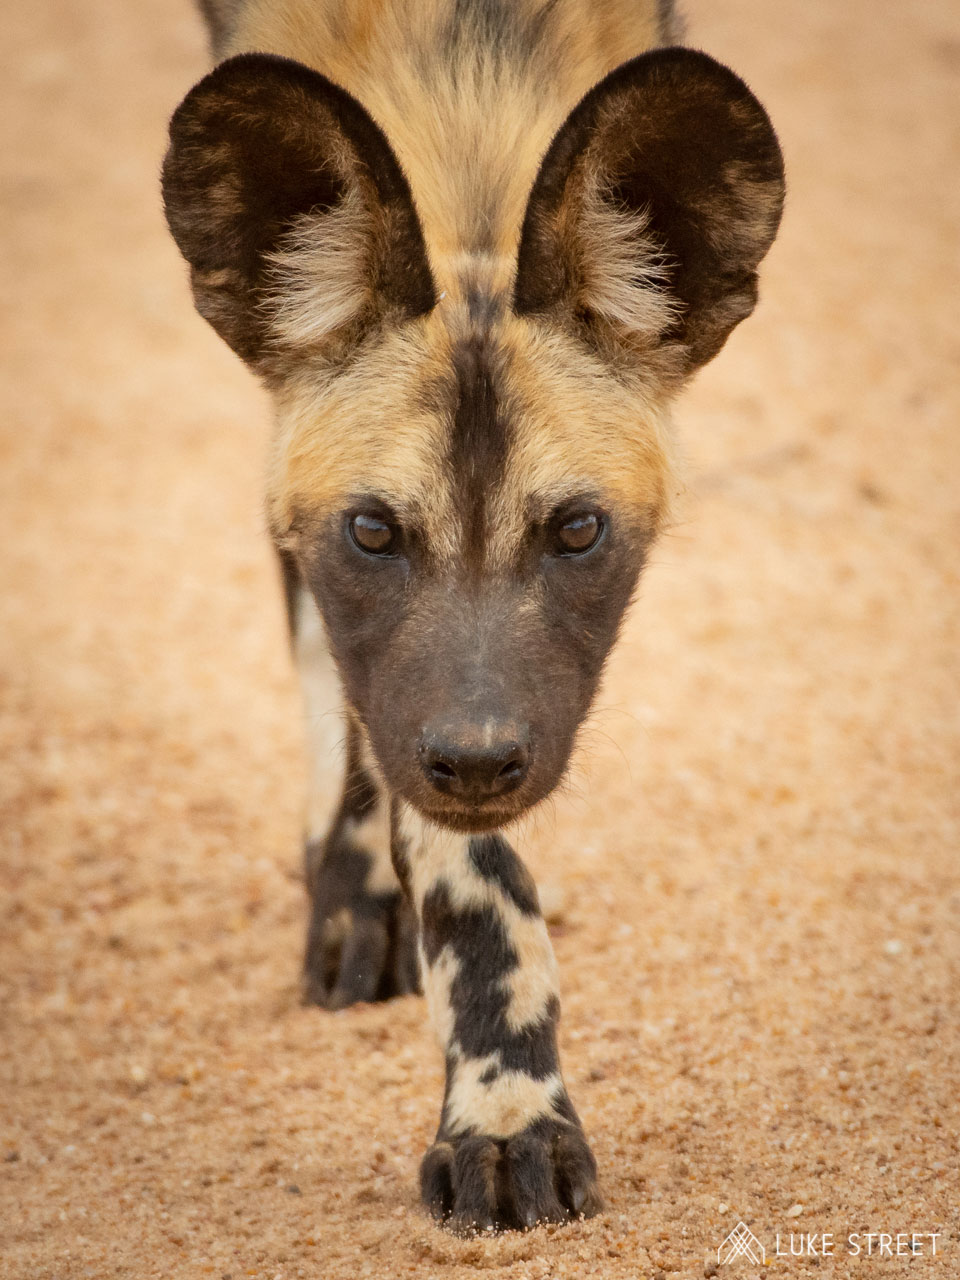 Tanda Tula - Wild dog portrait in the Greater Kruger